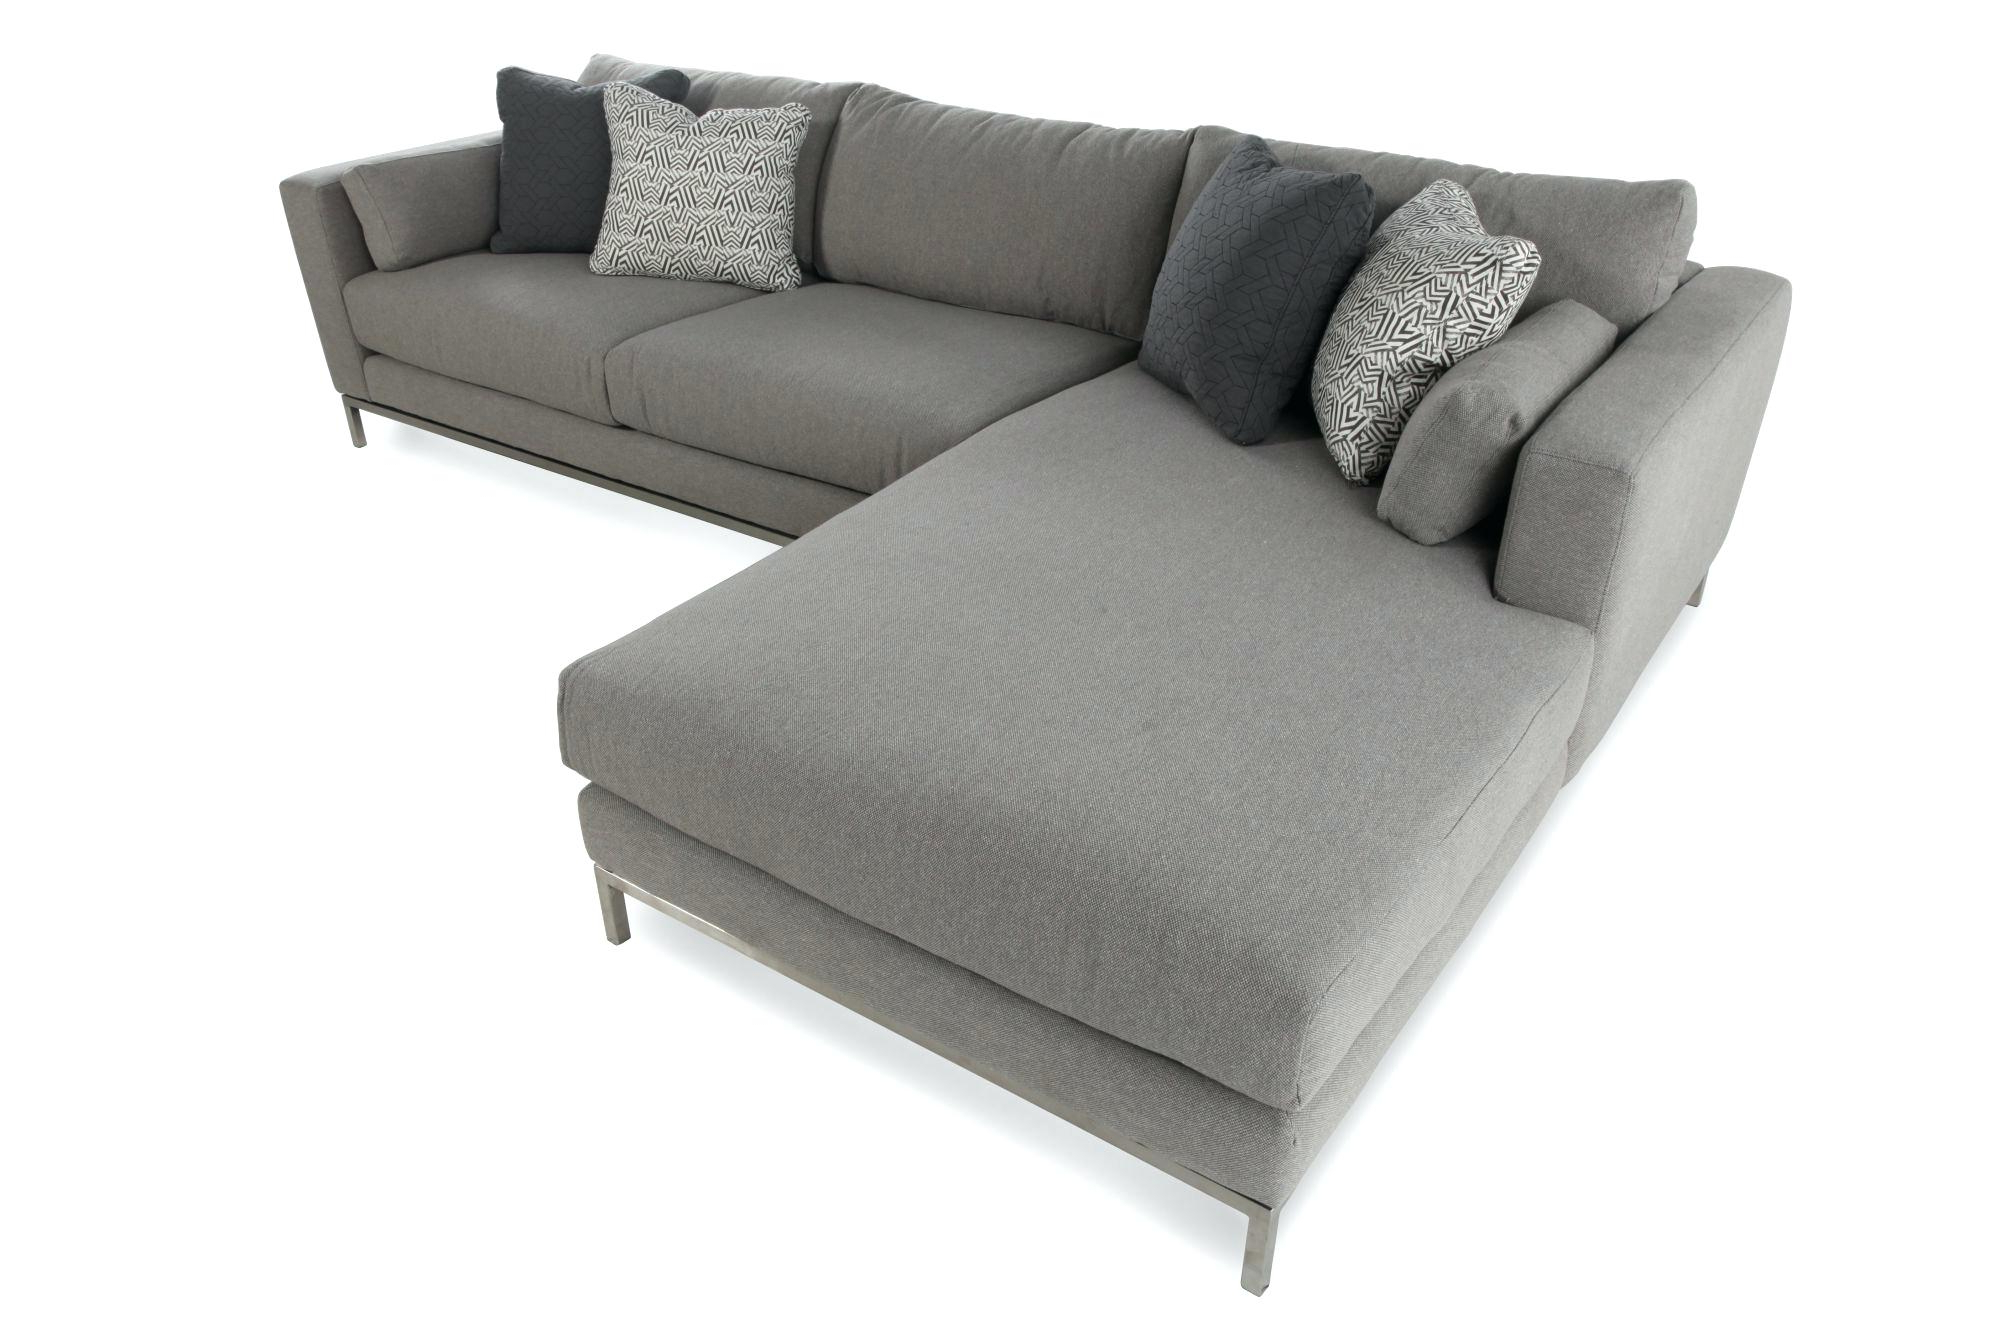 2 Piece Sectional Sofa Canada (Gallery 13 of 20)